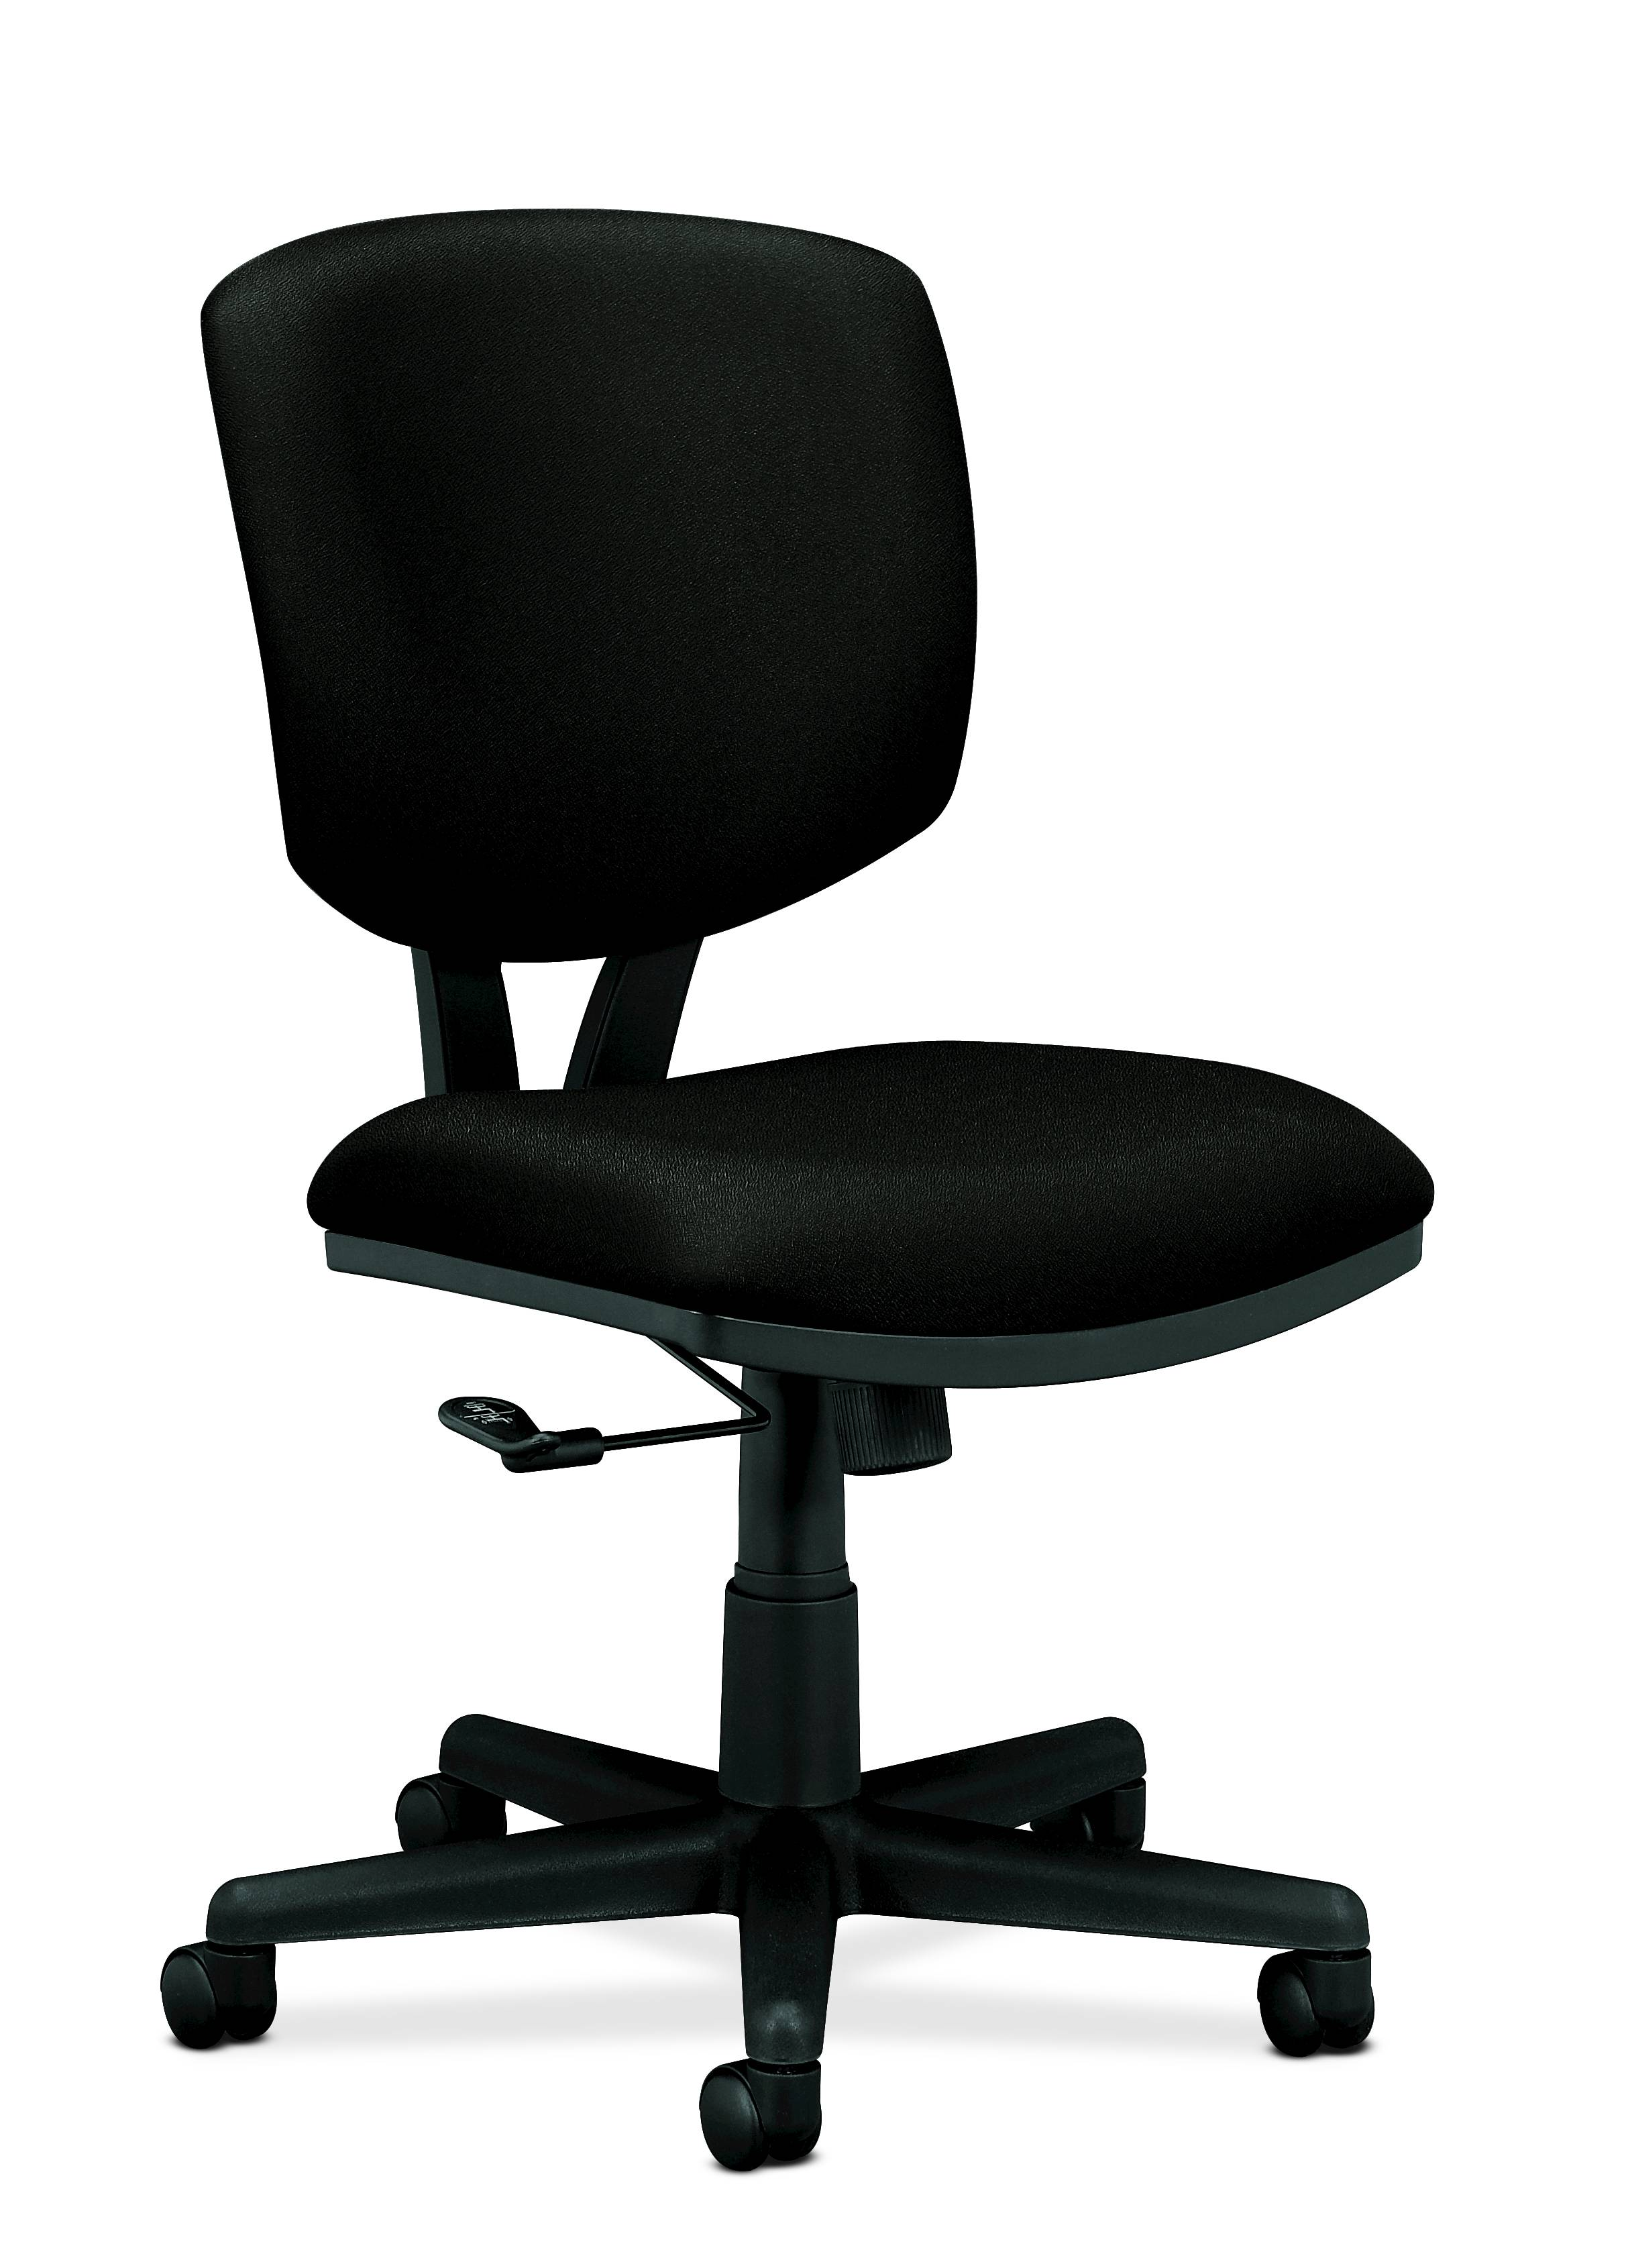 com shoppypal c at style reviews chair furniture gg baseball bt flash htm discount on task chairs price base office